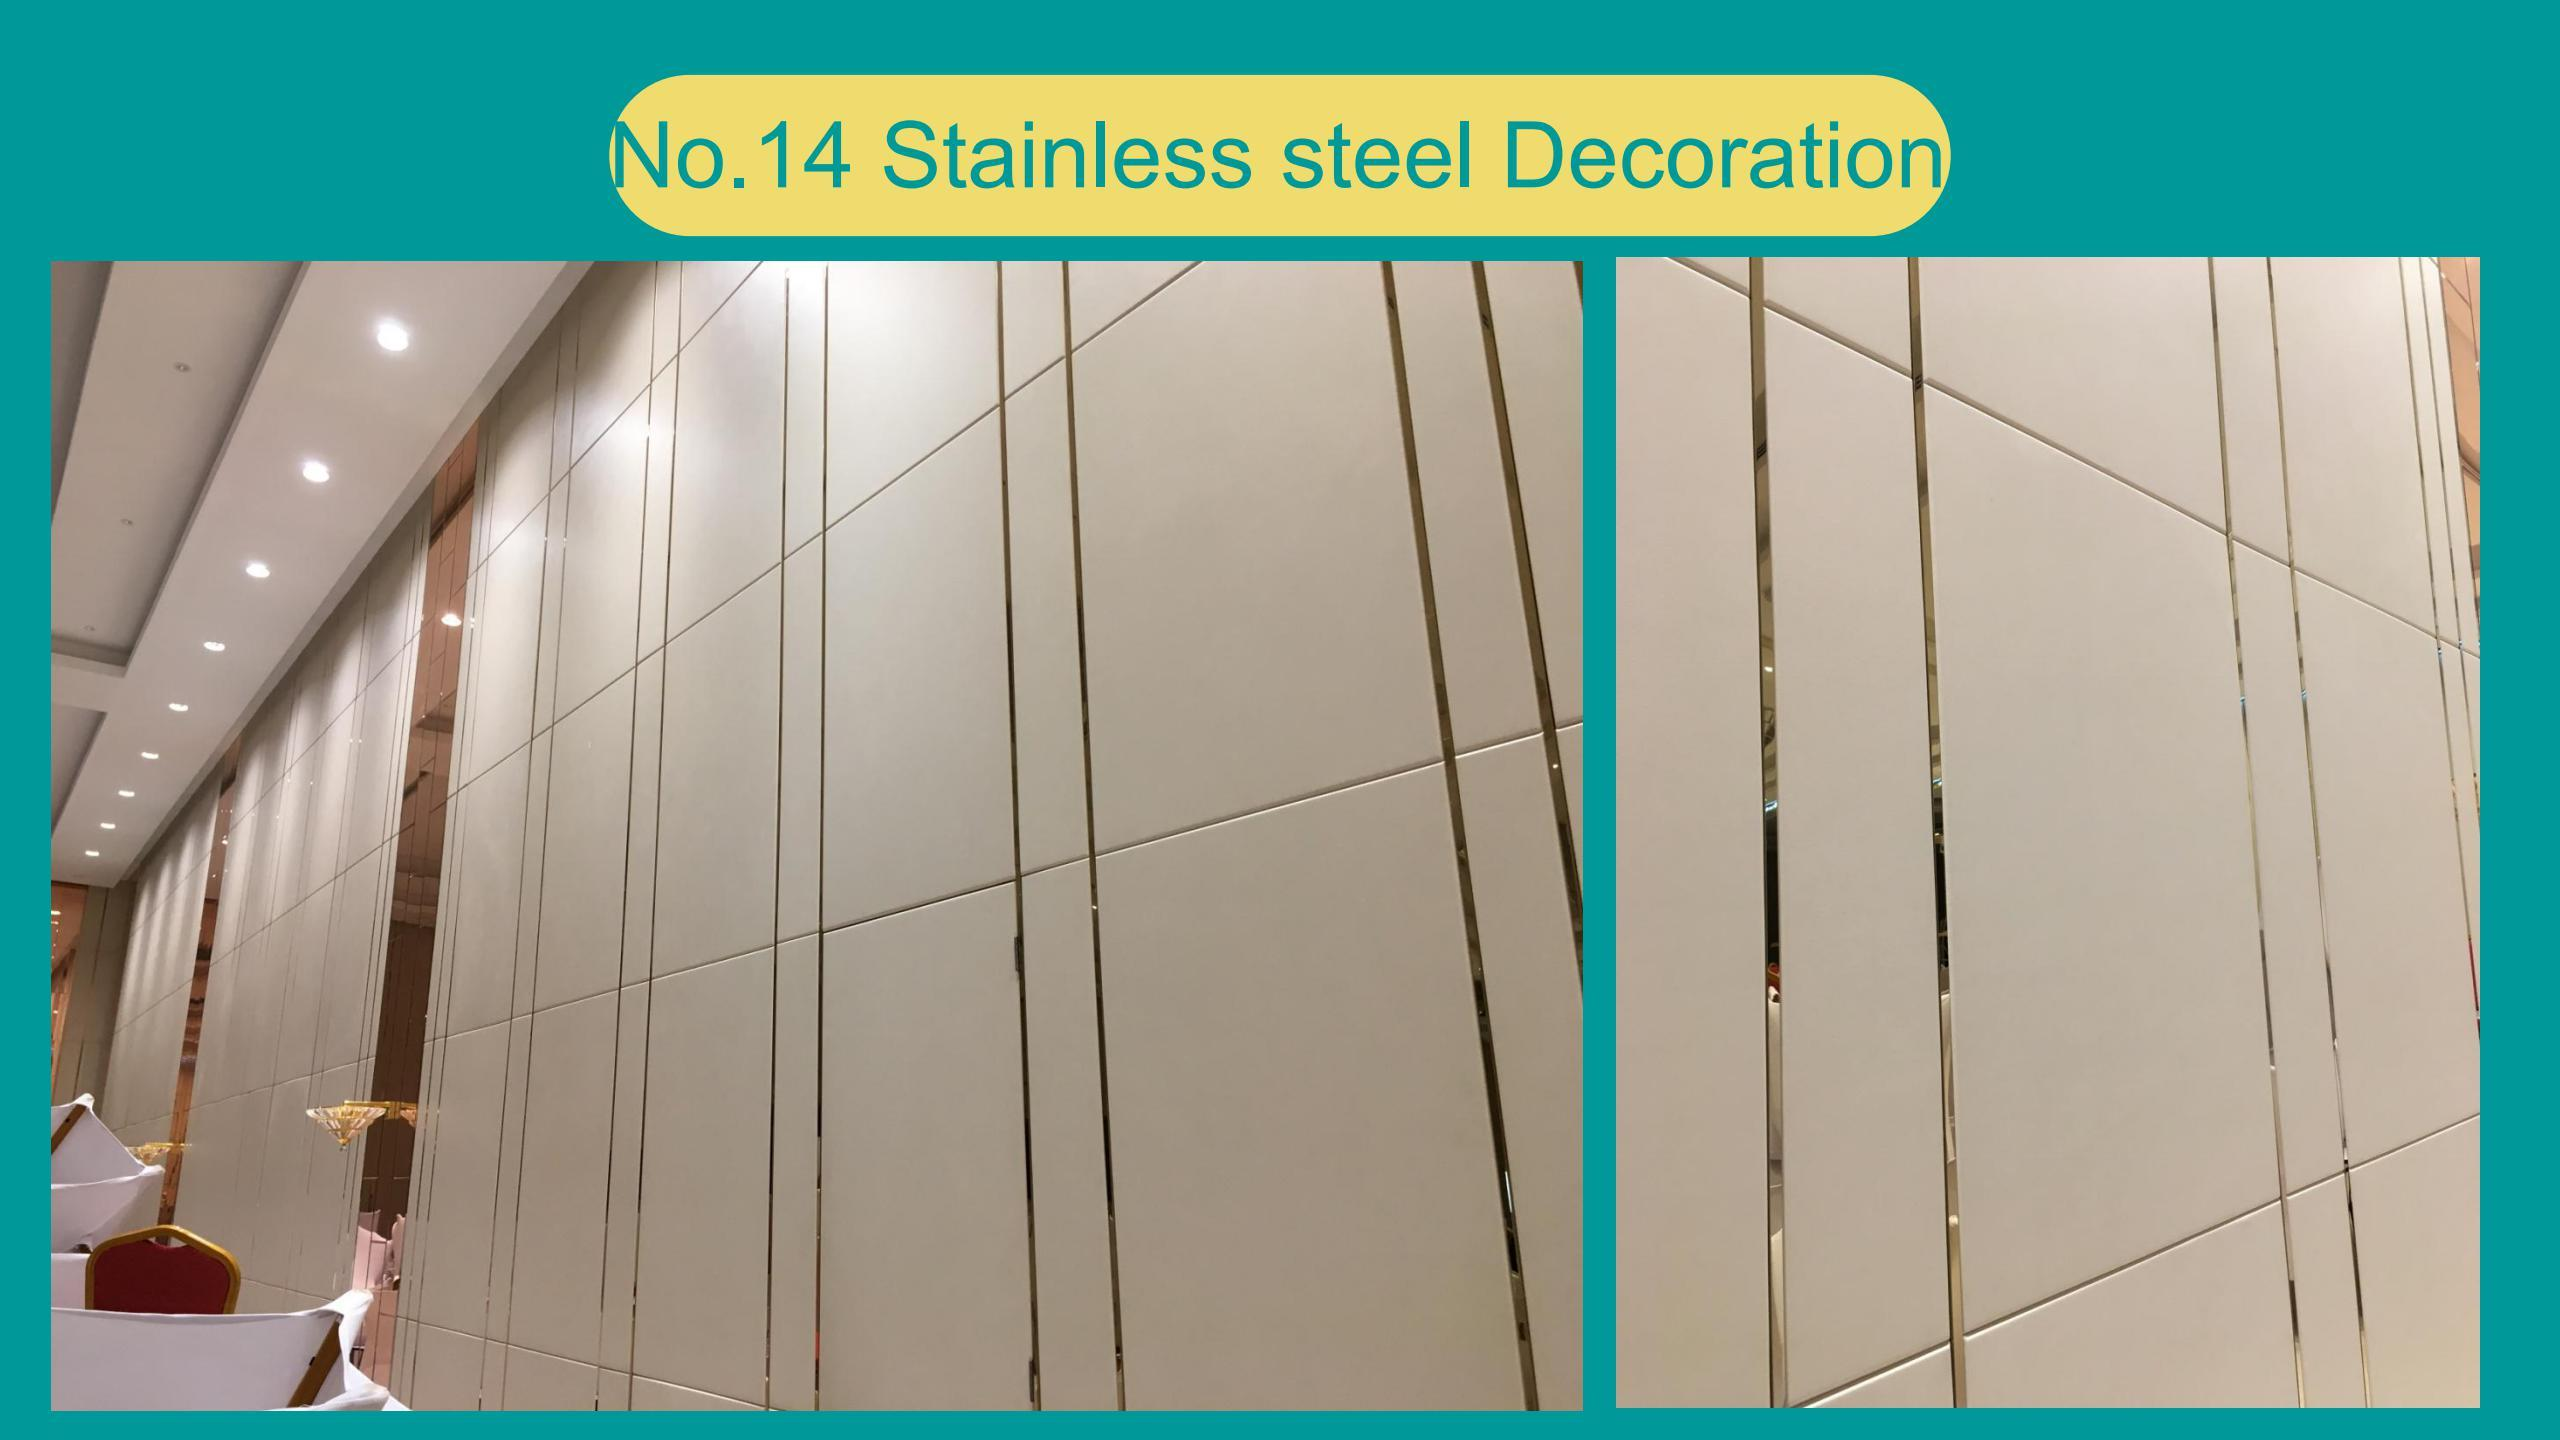 Stainless steel Decoration